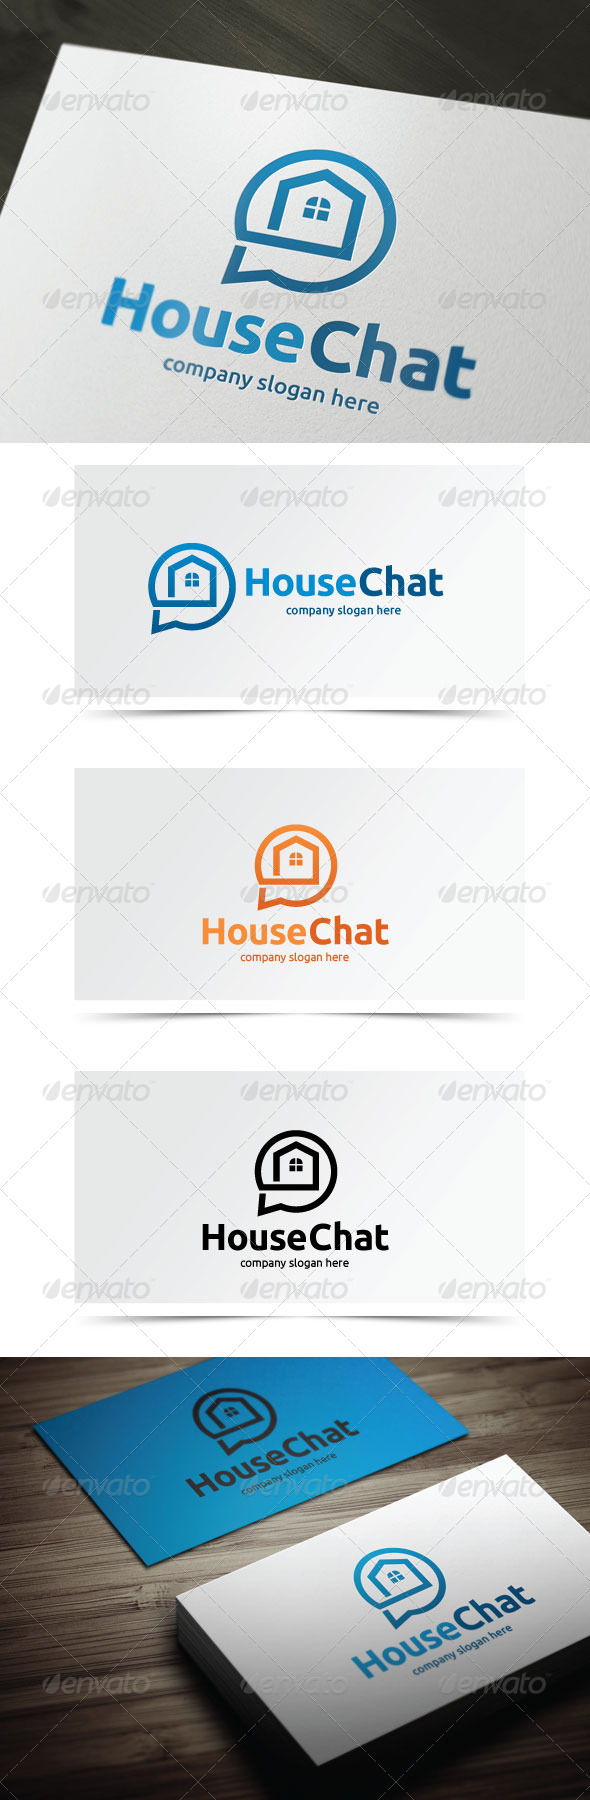 GraphicRiver House Chat 5542349